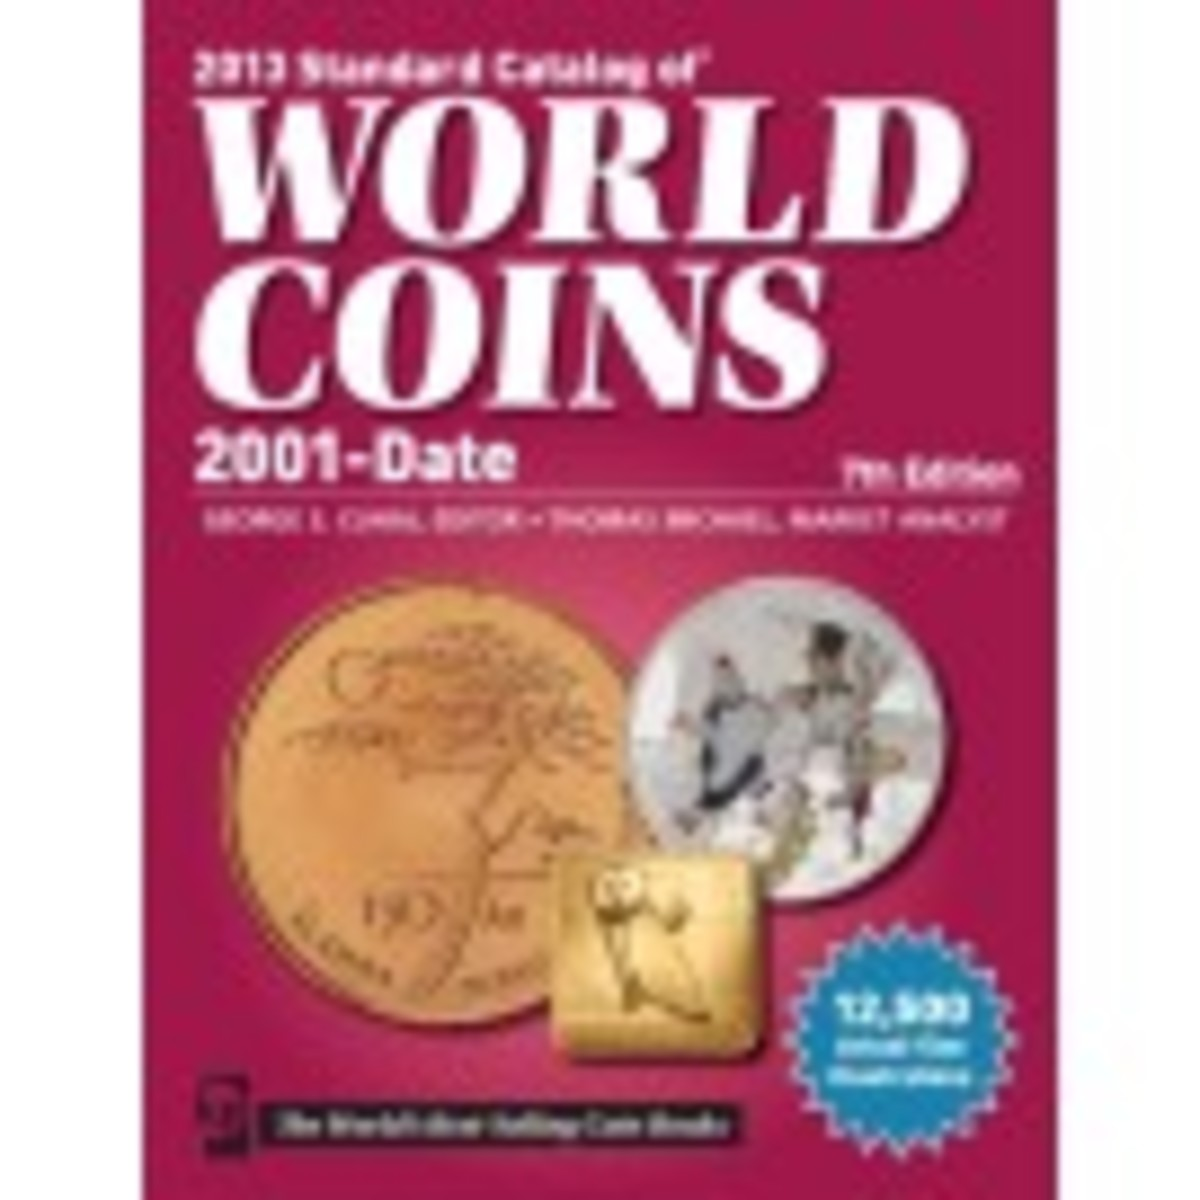 This 7th Edition of the Standard Catalog of World Coins, 2001 to Date is expanded with 216 added pages and hundreds of new listings and images